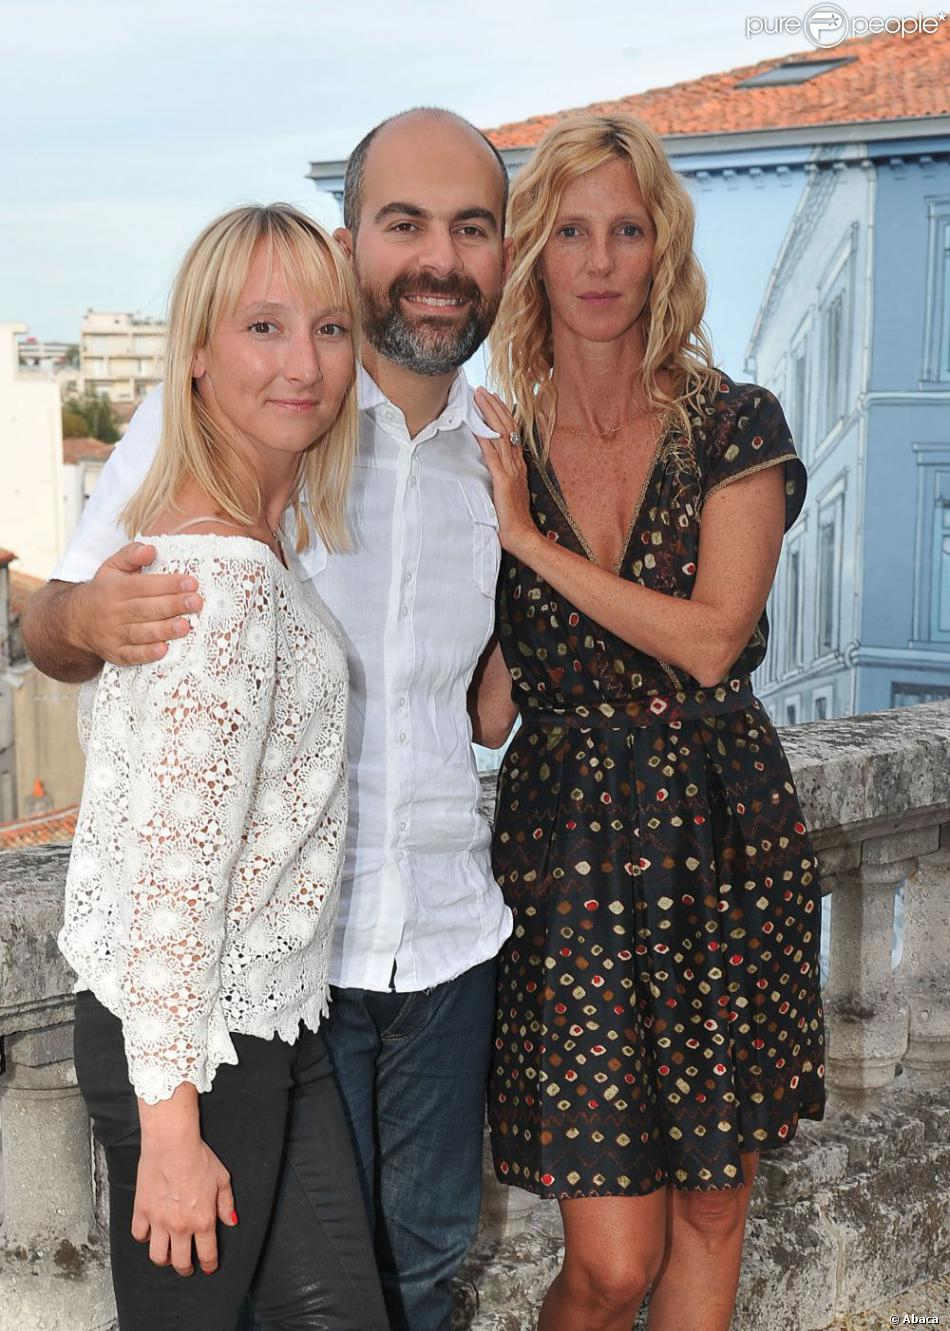 Sandrine Kiberlain, Marc Fitoussi, and Audrey Lamy at an event for Pauline détective (2012)